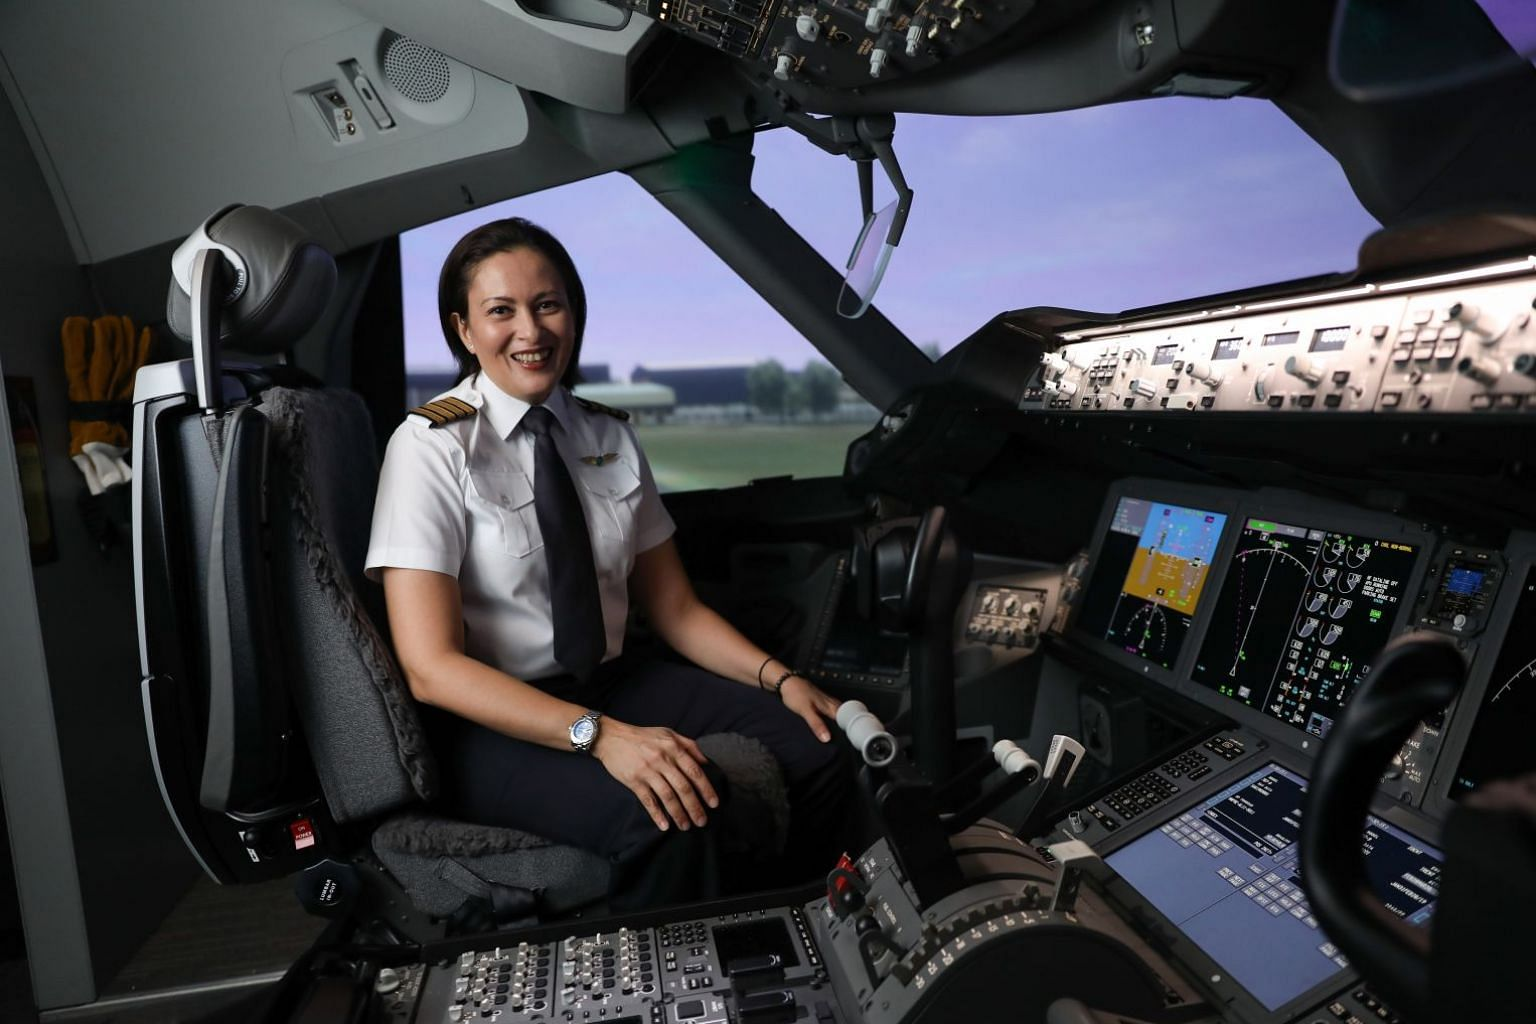 Captain Vanessa Ess is the first female to make it into SilkAir's cadet pilot programme in 2001 and also the first female pilot to graduate from Singapore Flying College.